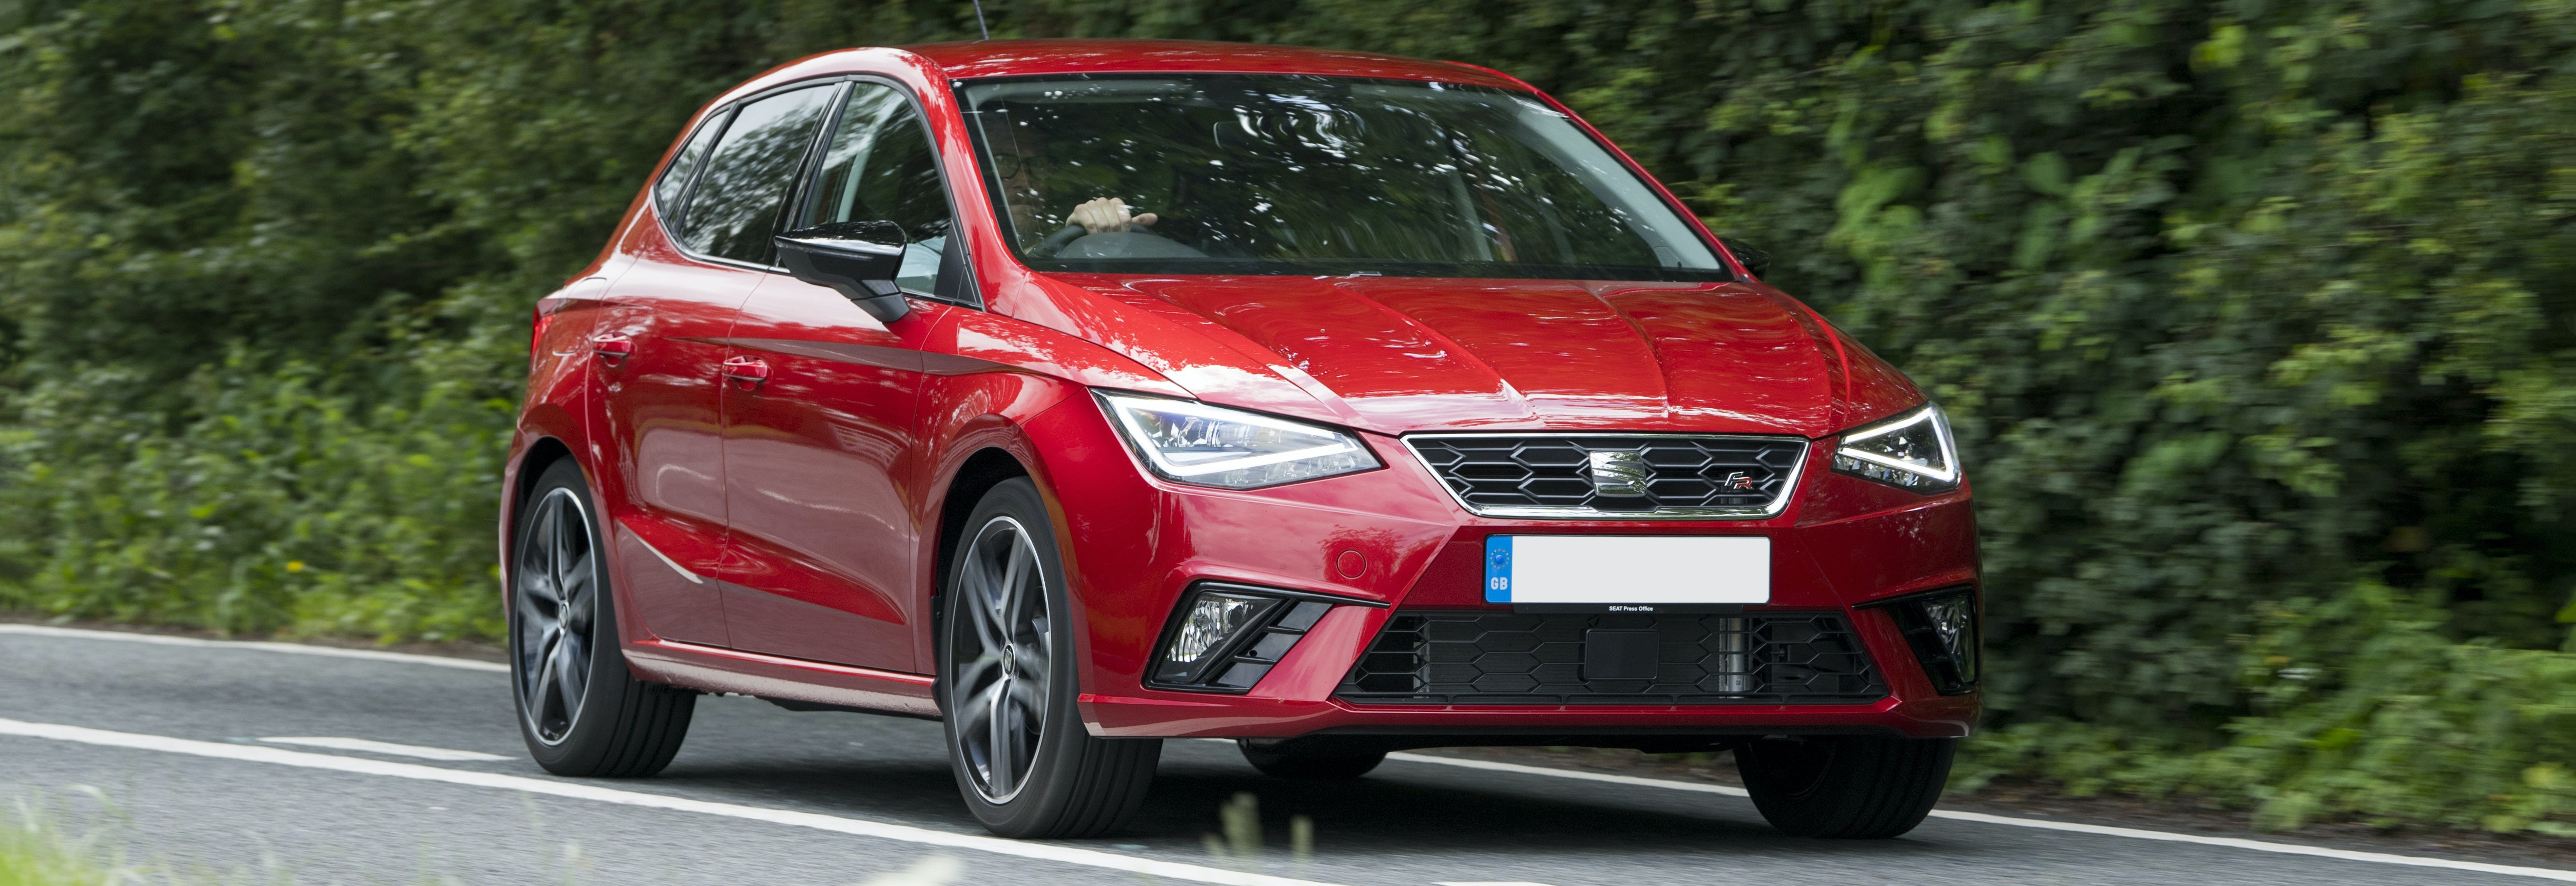 2018 seat ibiza red driving front